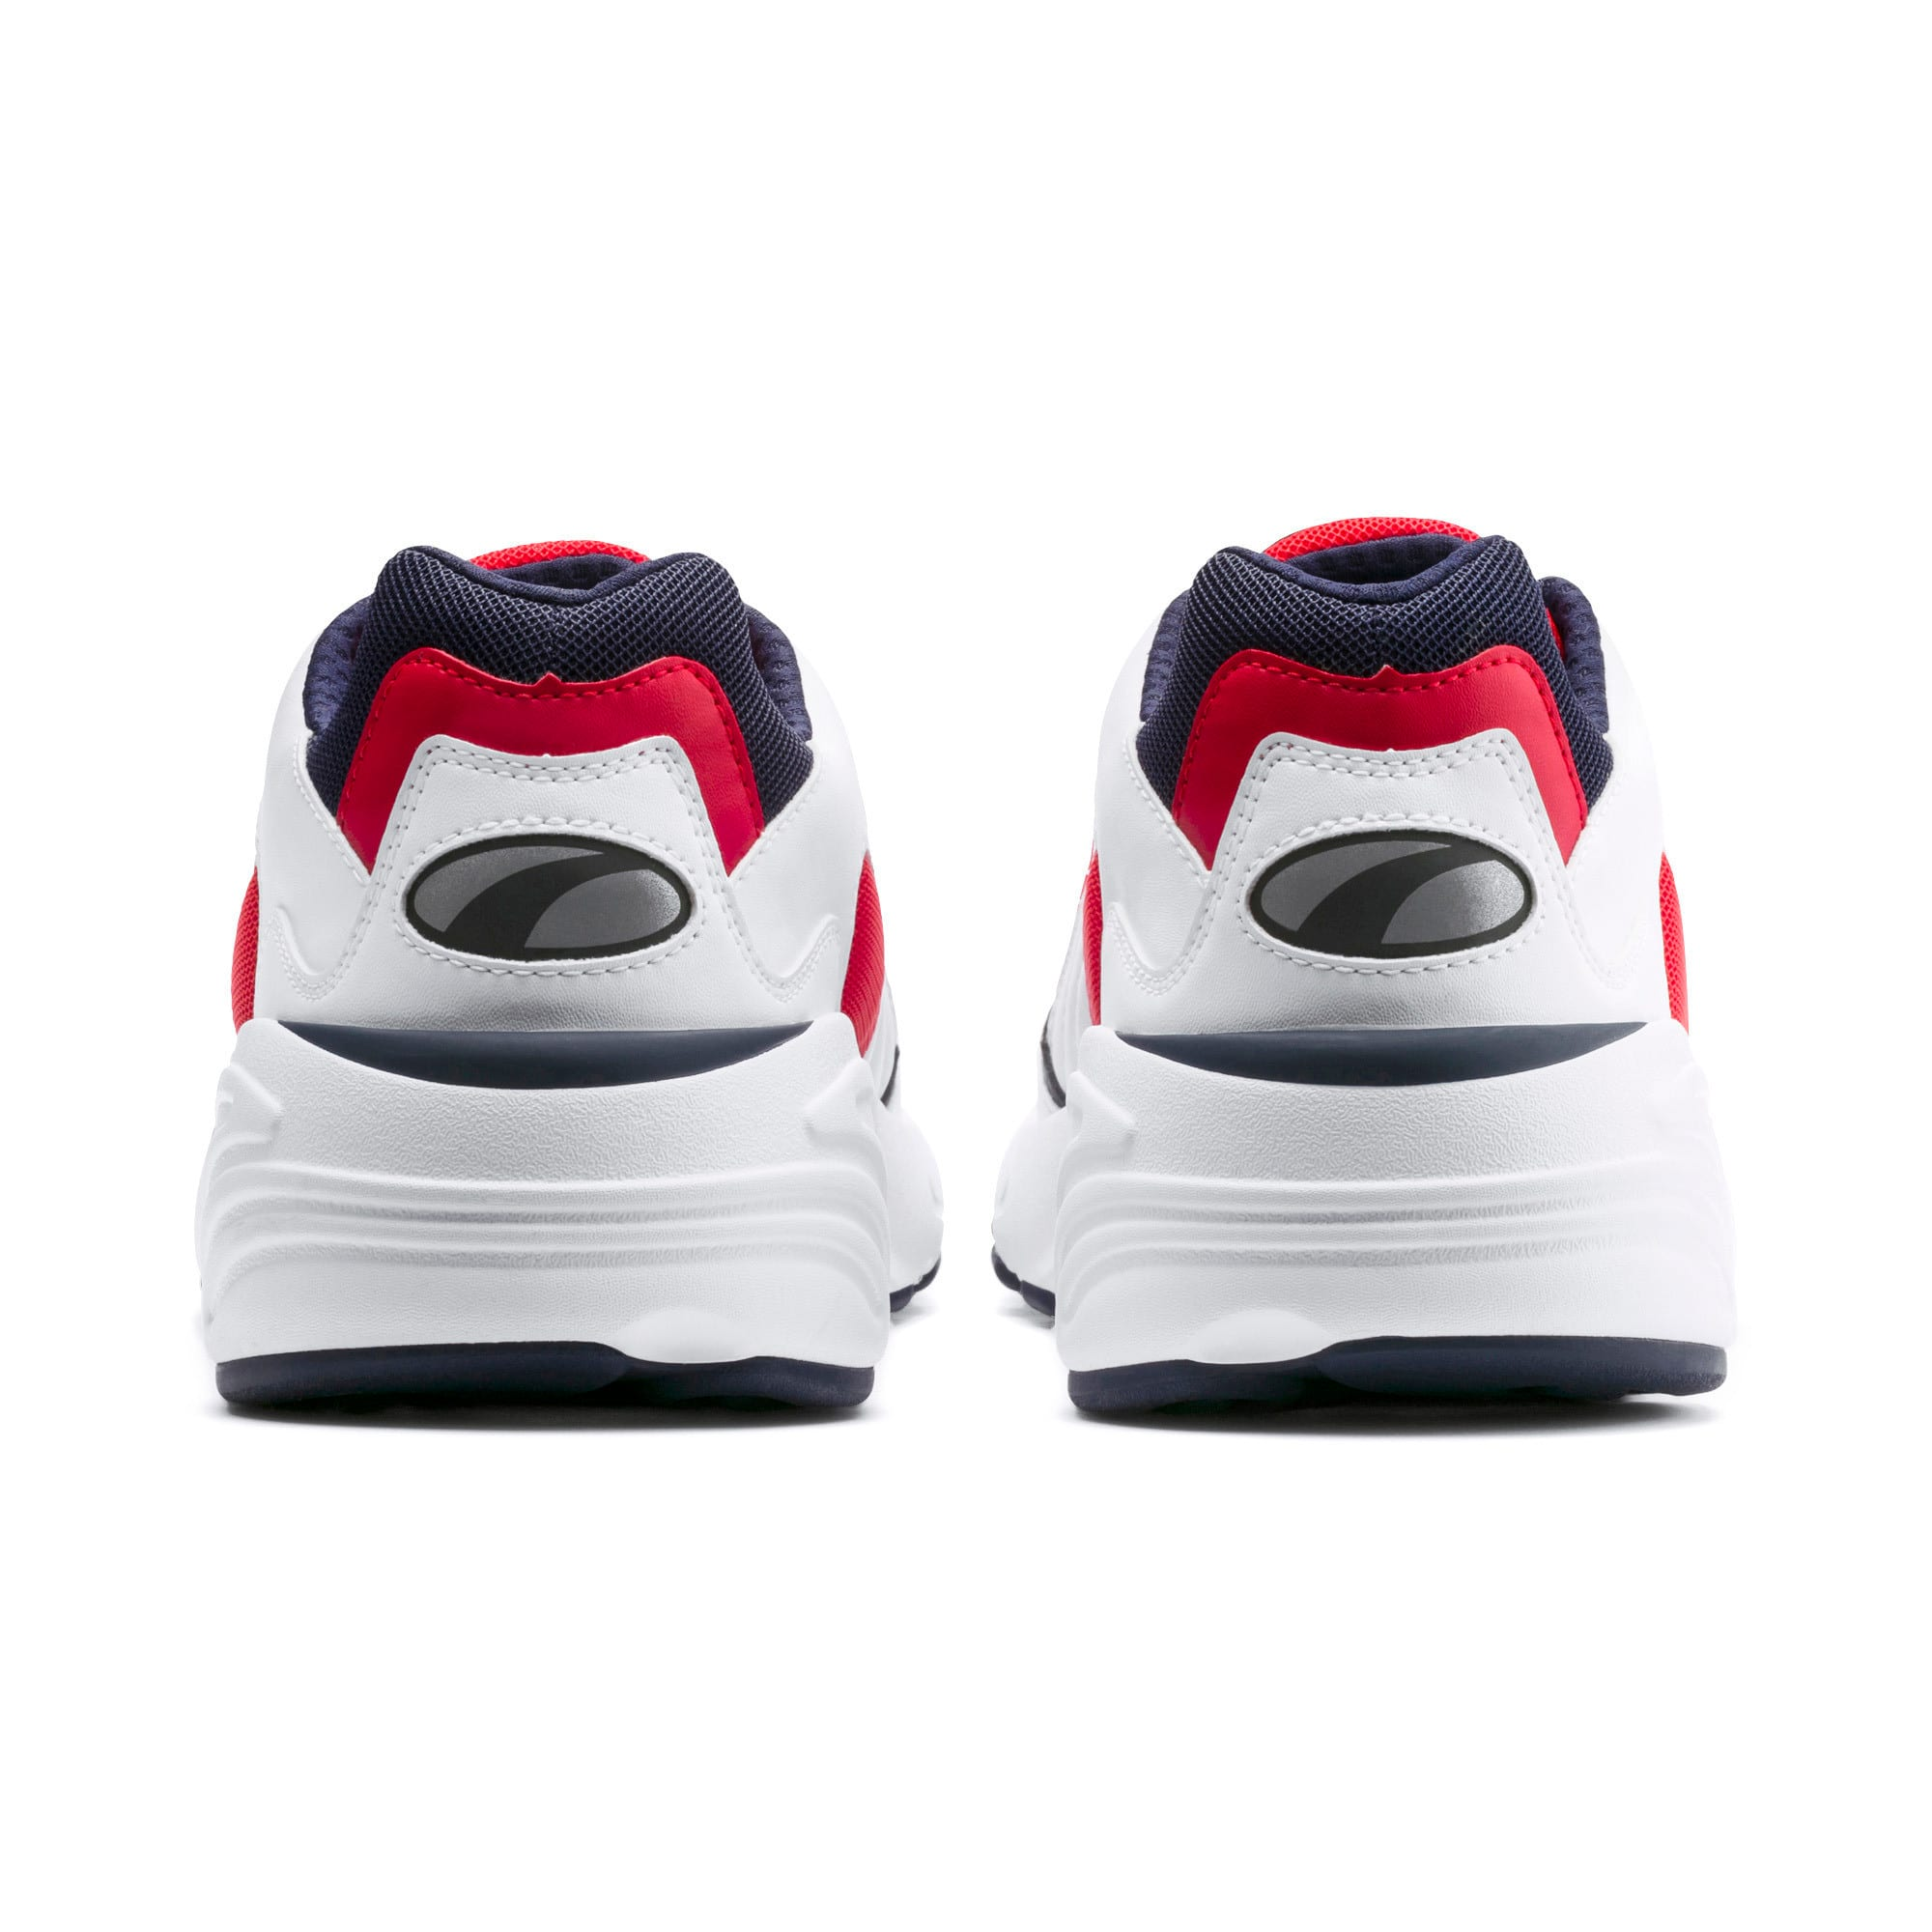 Thumbnail 3 of CELL Viper Sneakers, Puma White-High Risk Red, medium